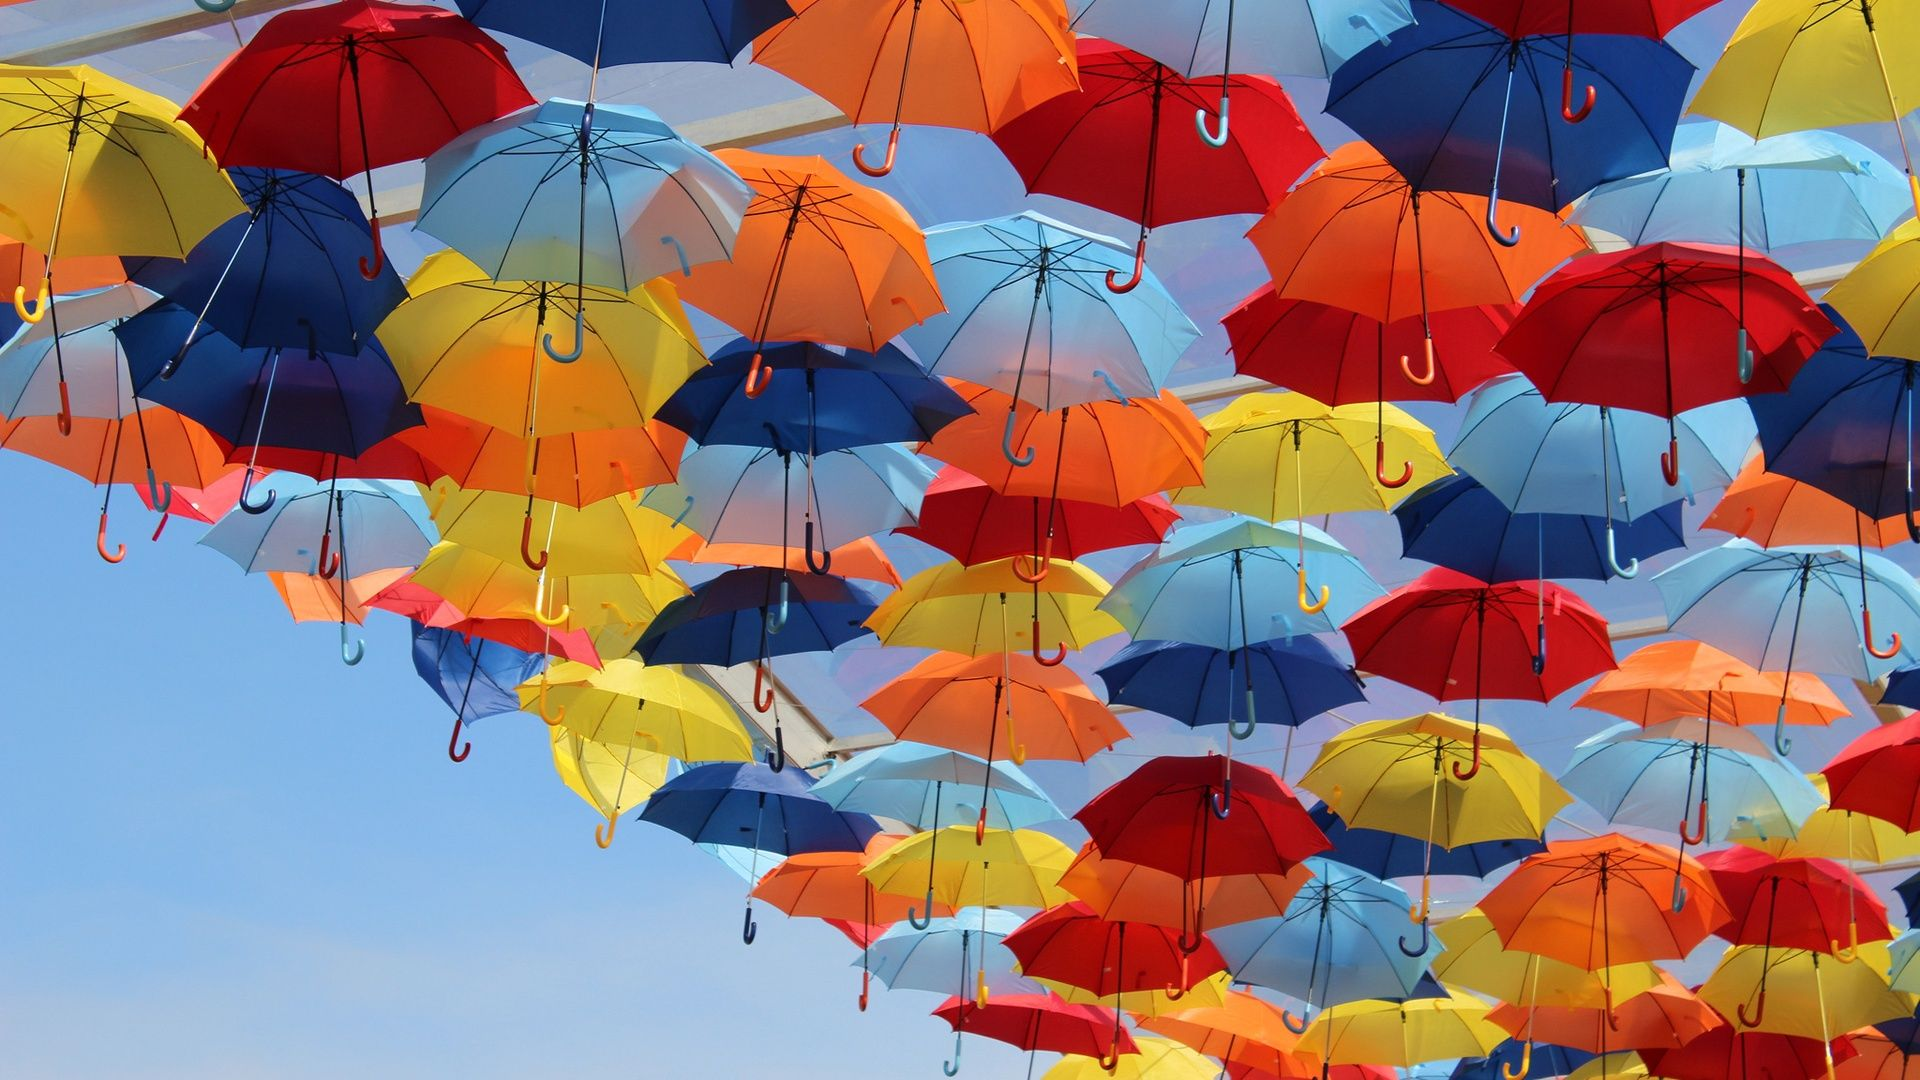 Umbrella Wallpaper Wide 9u0 Awesomeness Colorful umbrellas 1920x1080